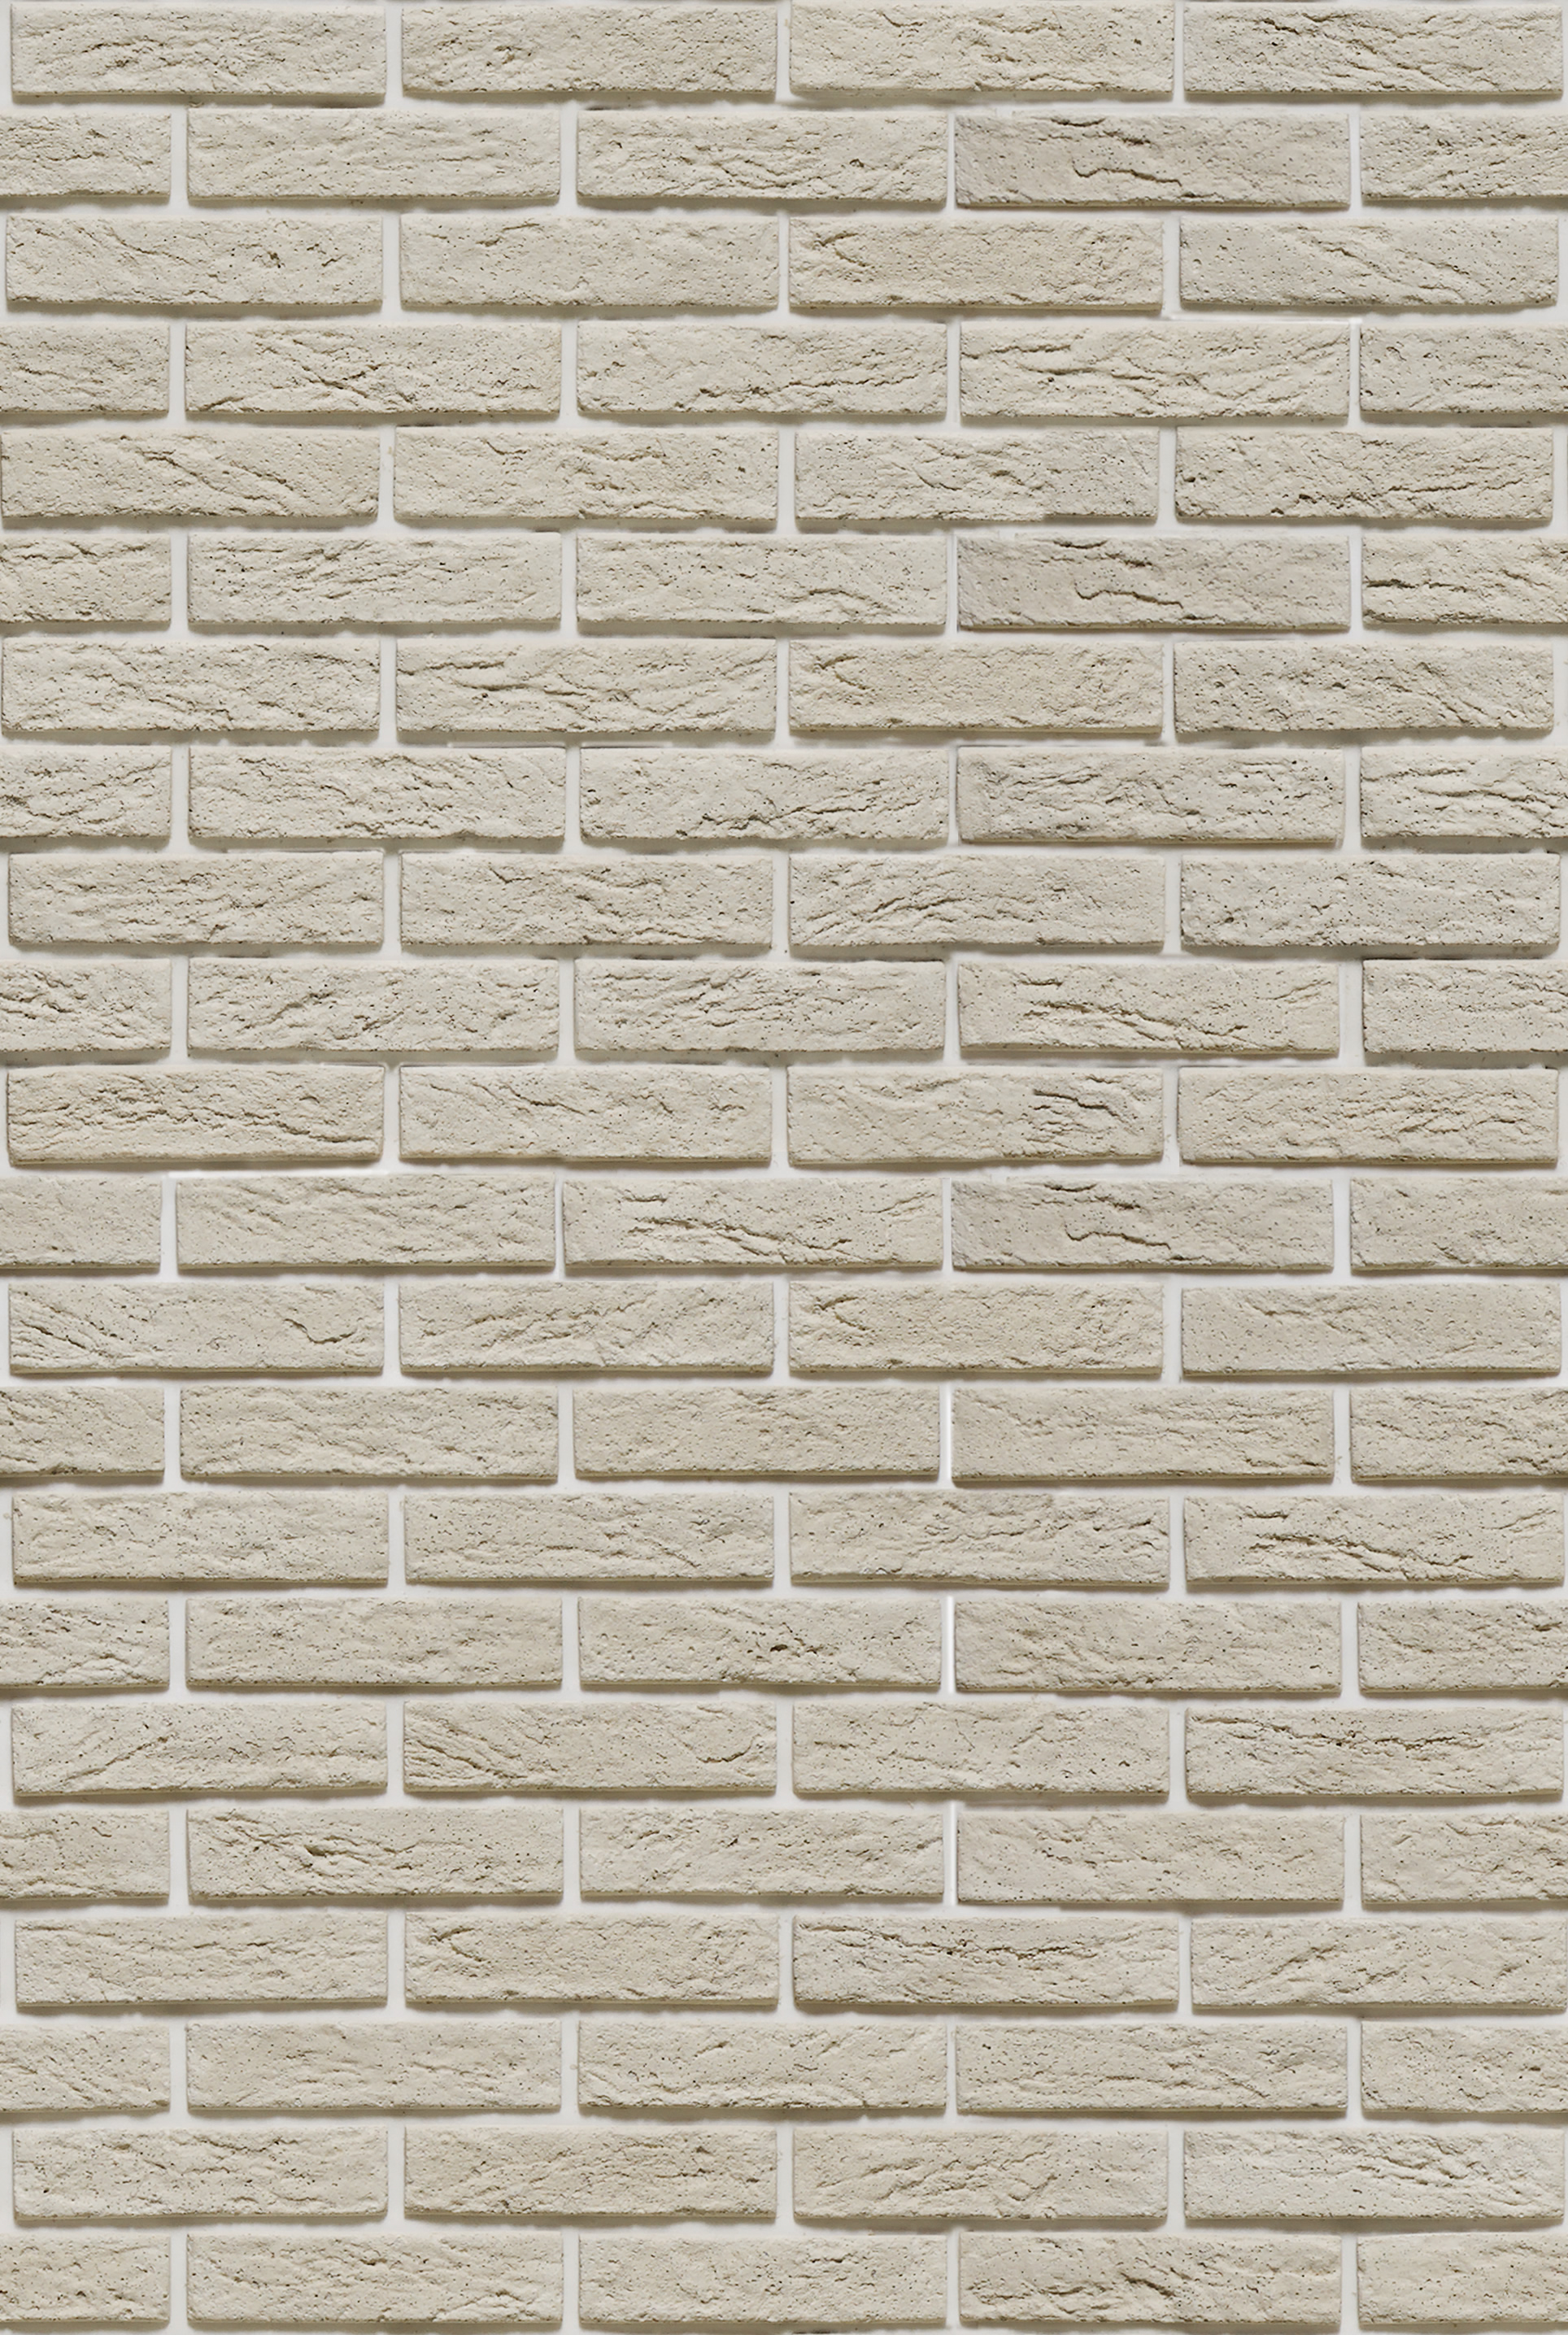 серые bricks, download photo, background, texture, wall